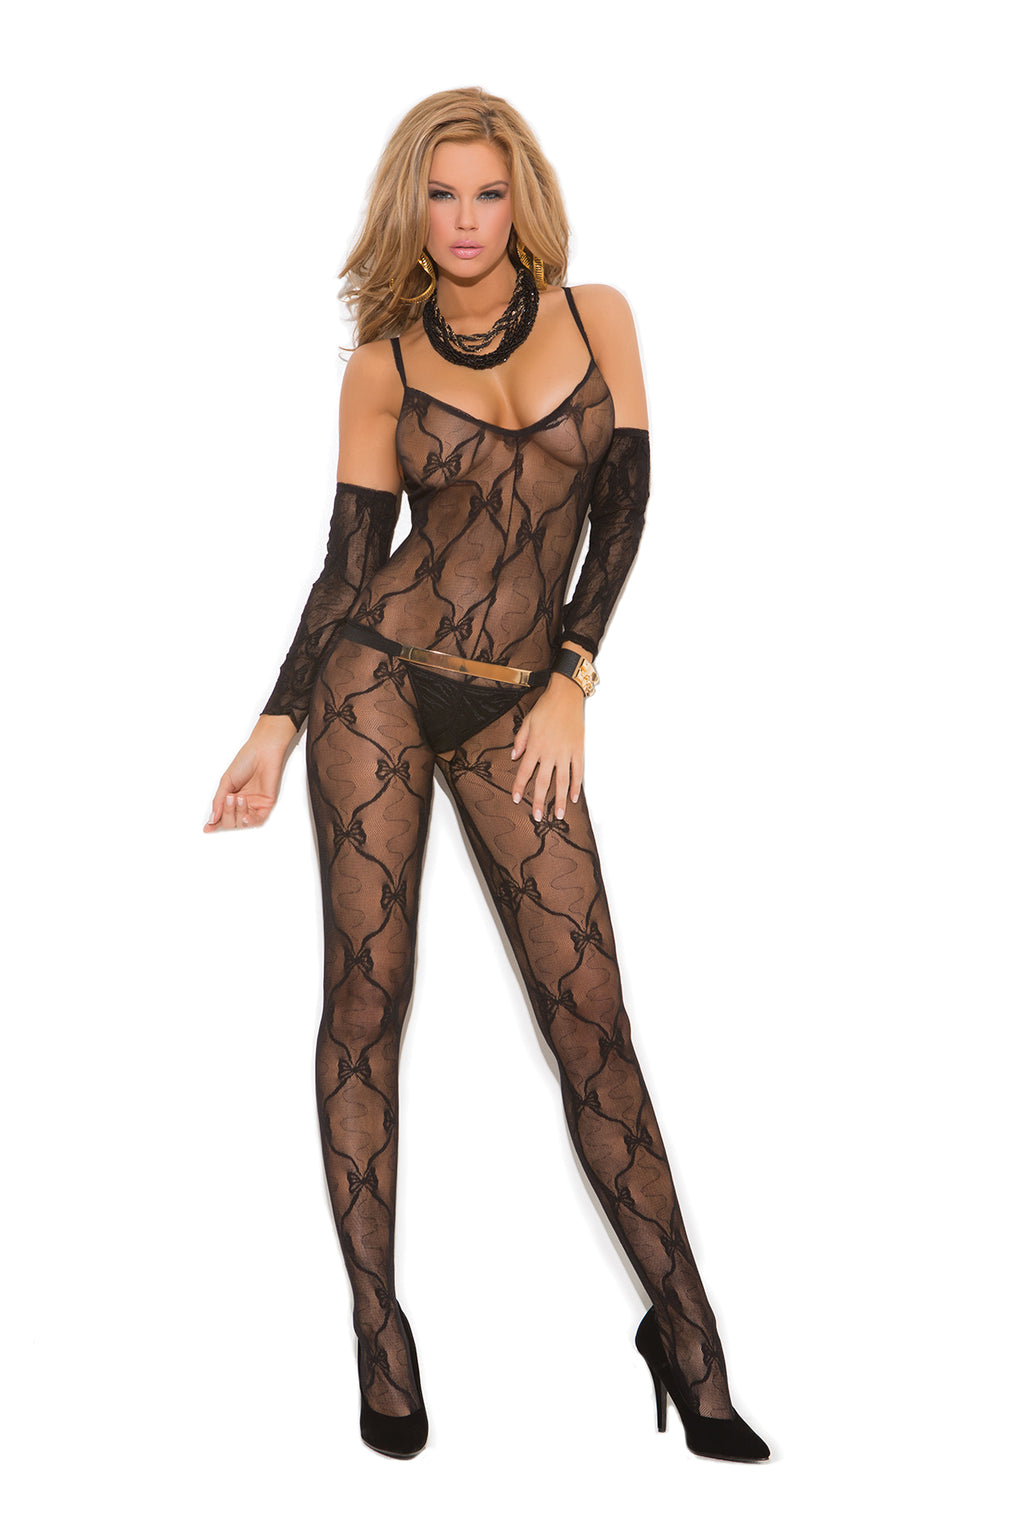 Elegant Moments 1604 Black Bow Tie Lace Bodystocking